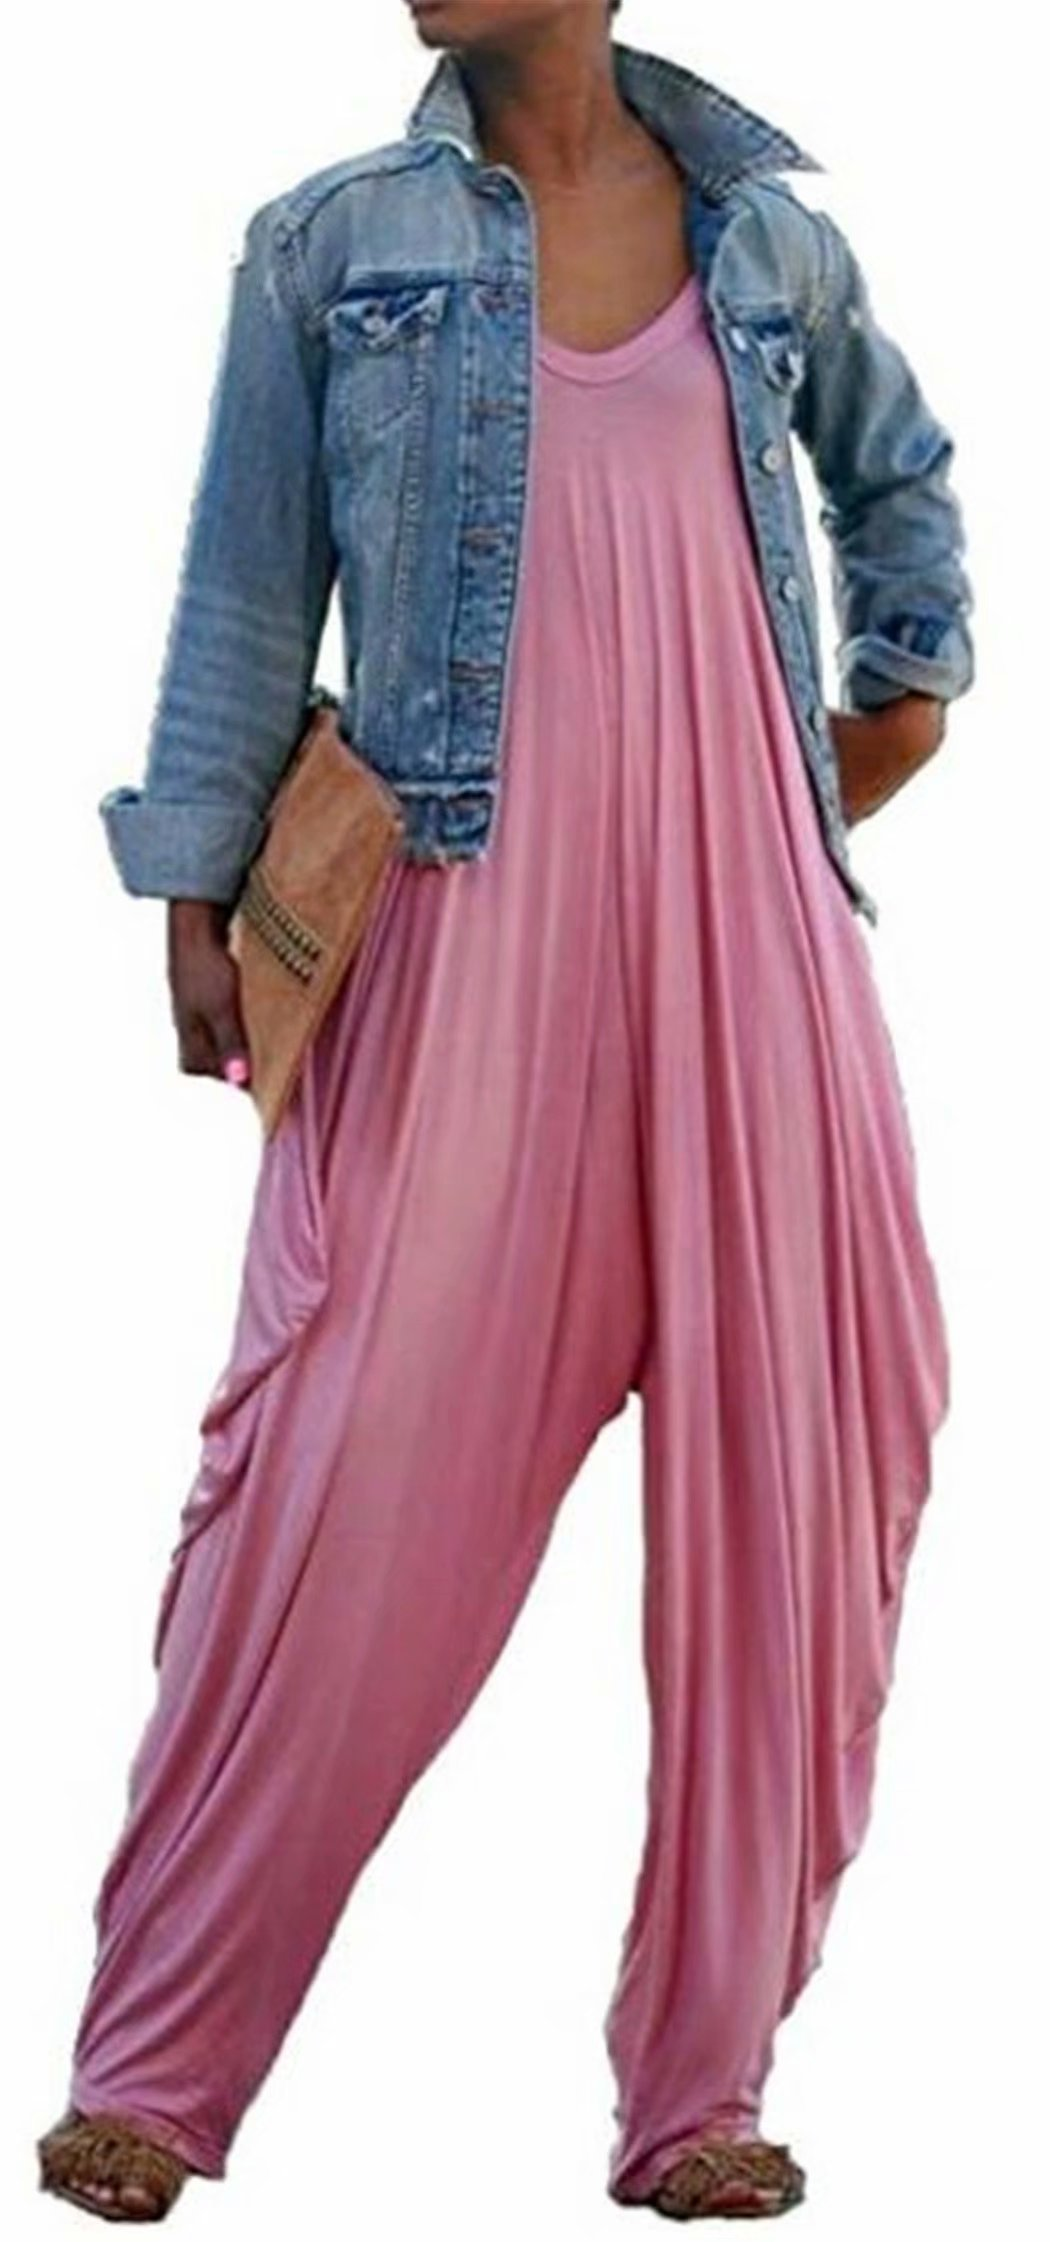 JINTING Women V Neck Spaghetti Strap Wide Leg Long Pant Casual Loose Harem One Piece Jumpsuit Romper Plus Size Size S (Pink)